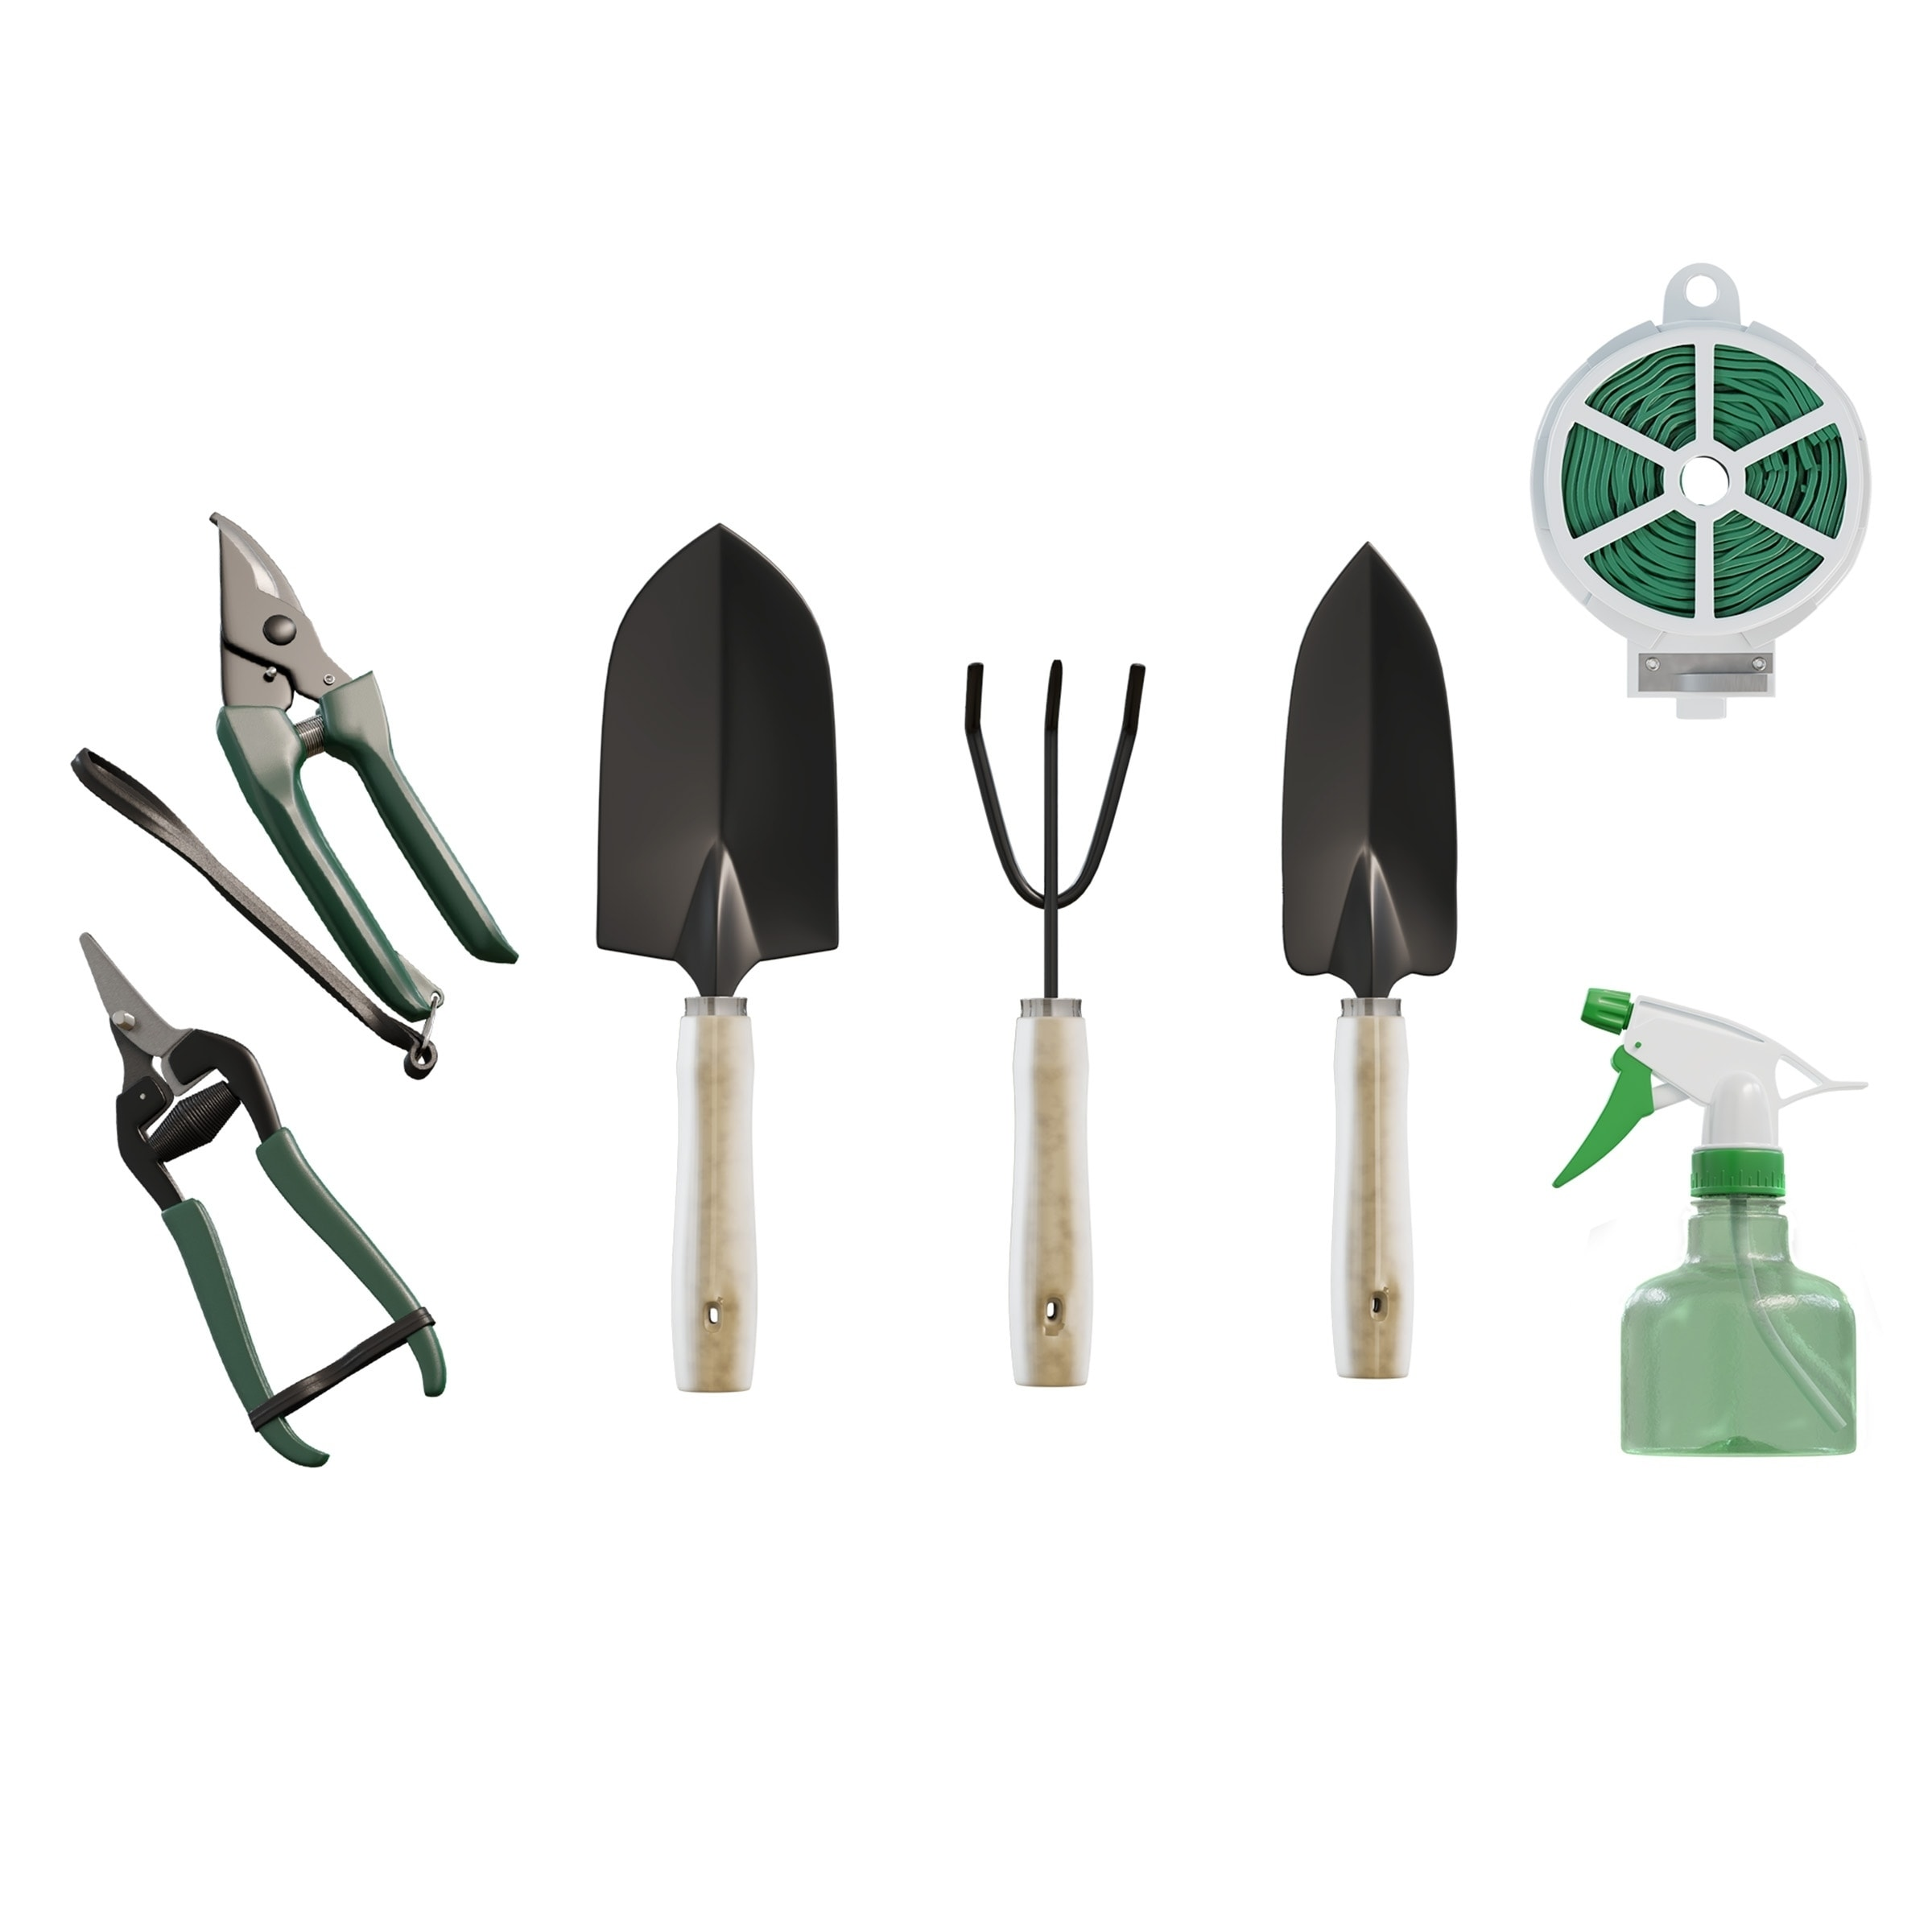 Shop 8 Piece Garden Tote And Tool Set  Gardening Hand Tools By Pure Garden    On Sale   Free Shipping On Orders Over $45   Overstock.com   10952361